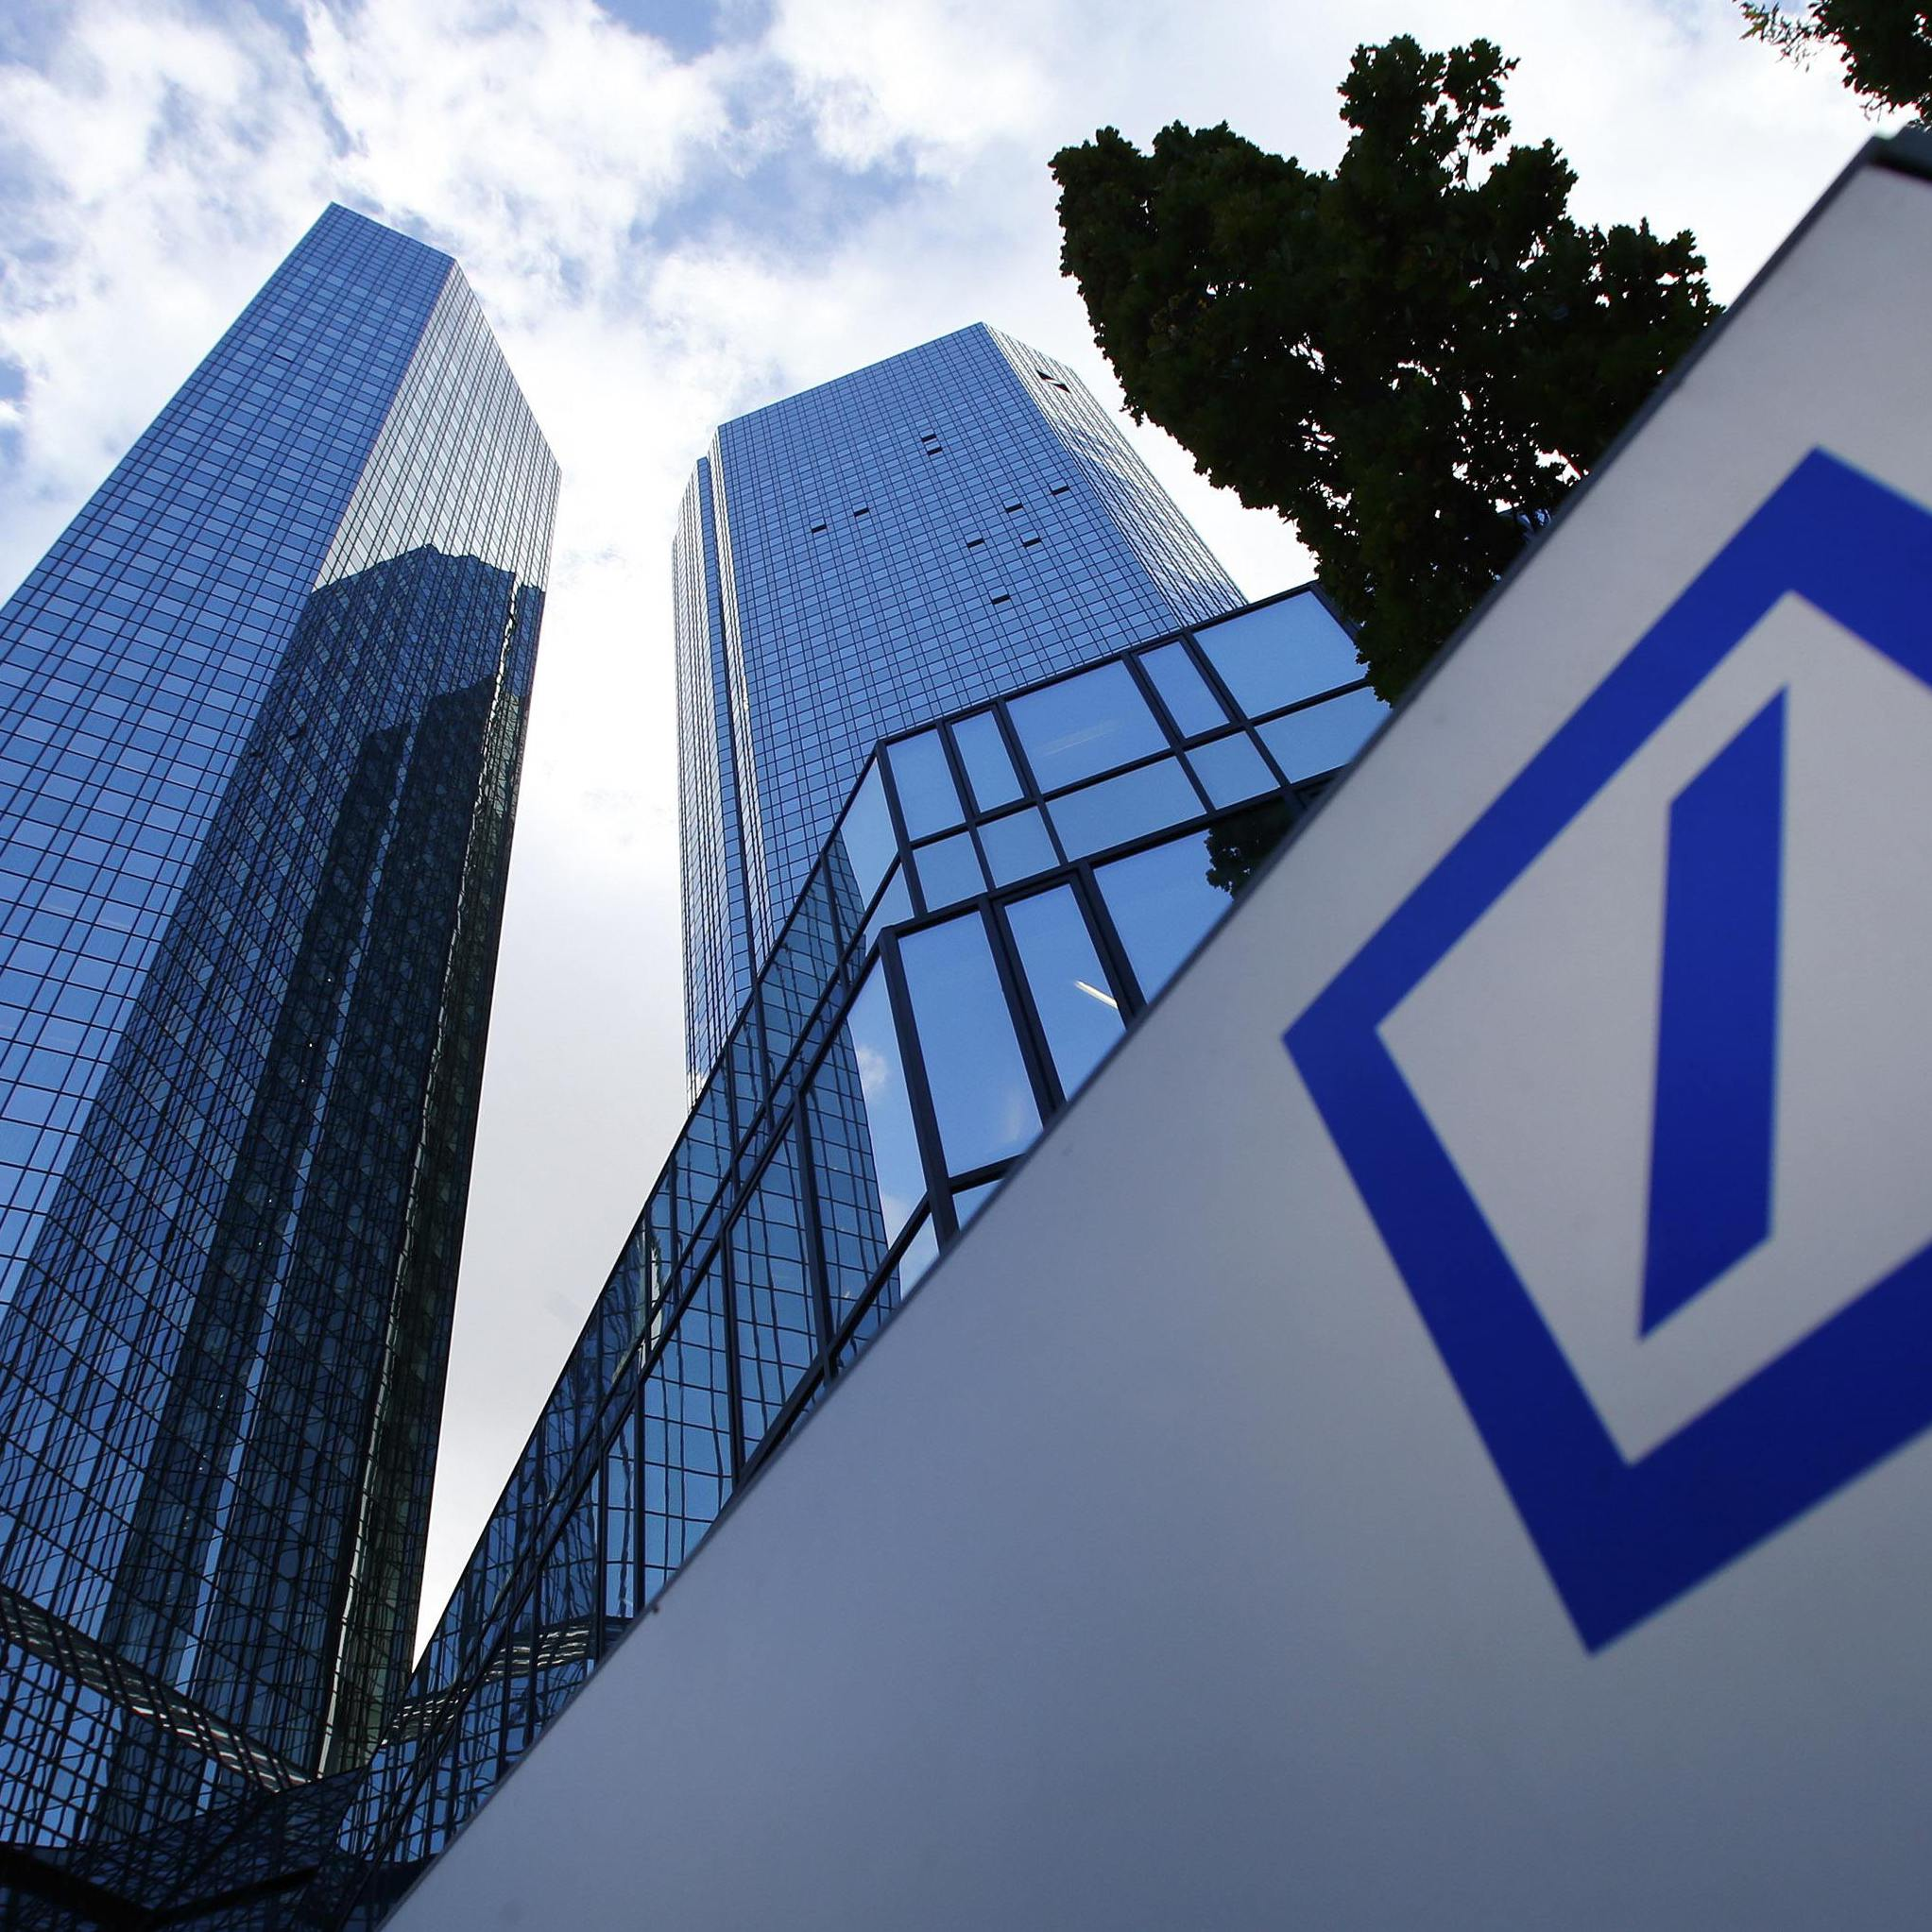 Deutsche Bank corporate offices